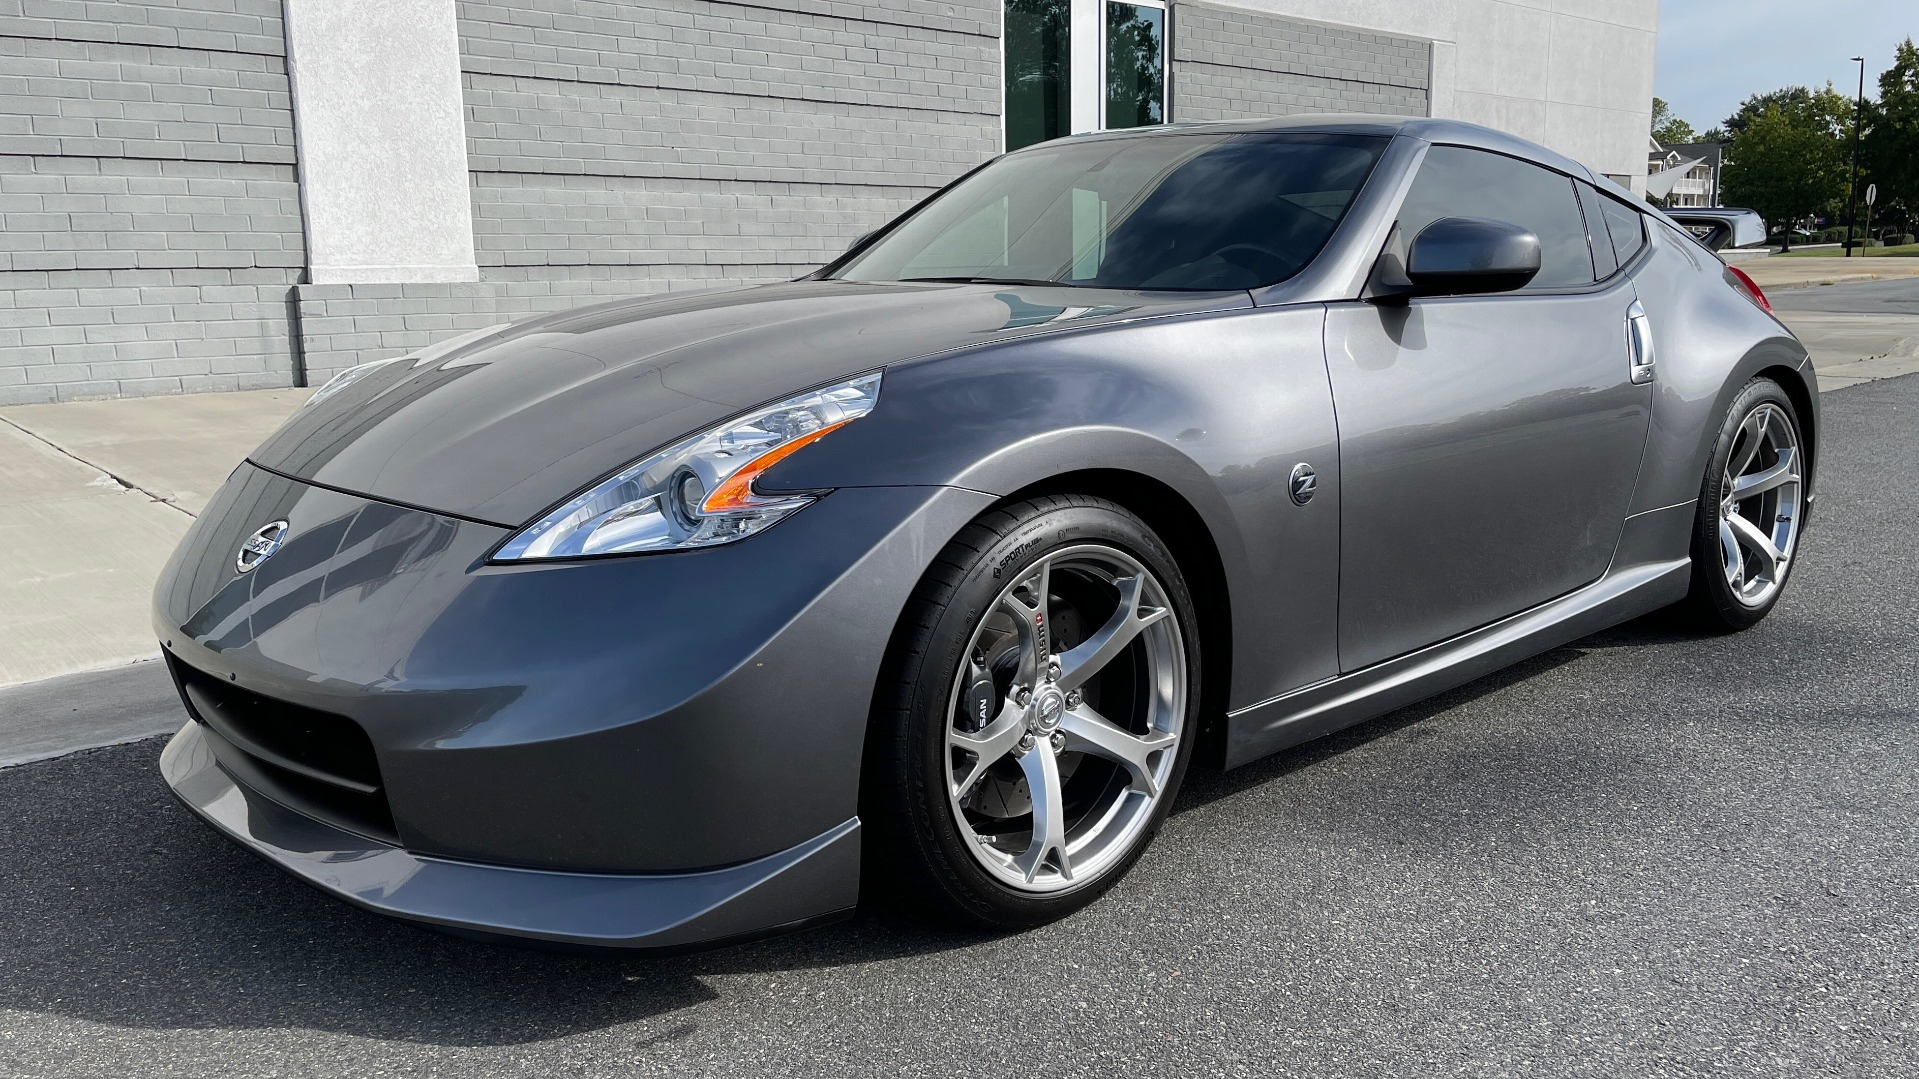 Used 2011 Nissan 370Z NISMO COUPE / 3.7L V6 / 6-SPD MAN / AUTO CLIMATE CONTROL for sale $32,995 at Formula Imports in Charlotte NC 28227 3